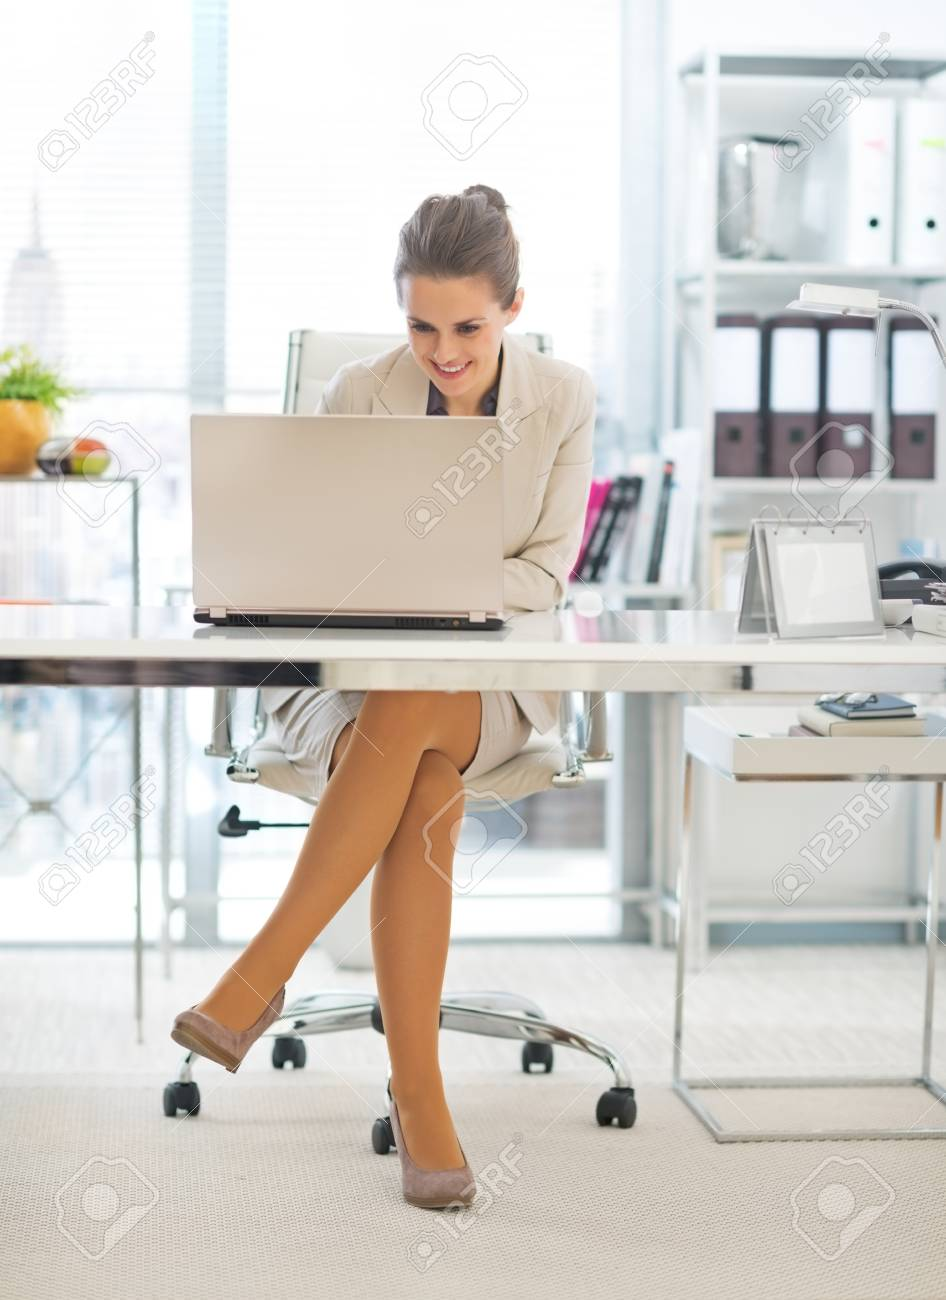 Business woman working on laptop in office Stock Photo - 29996961